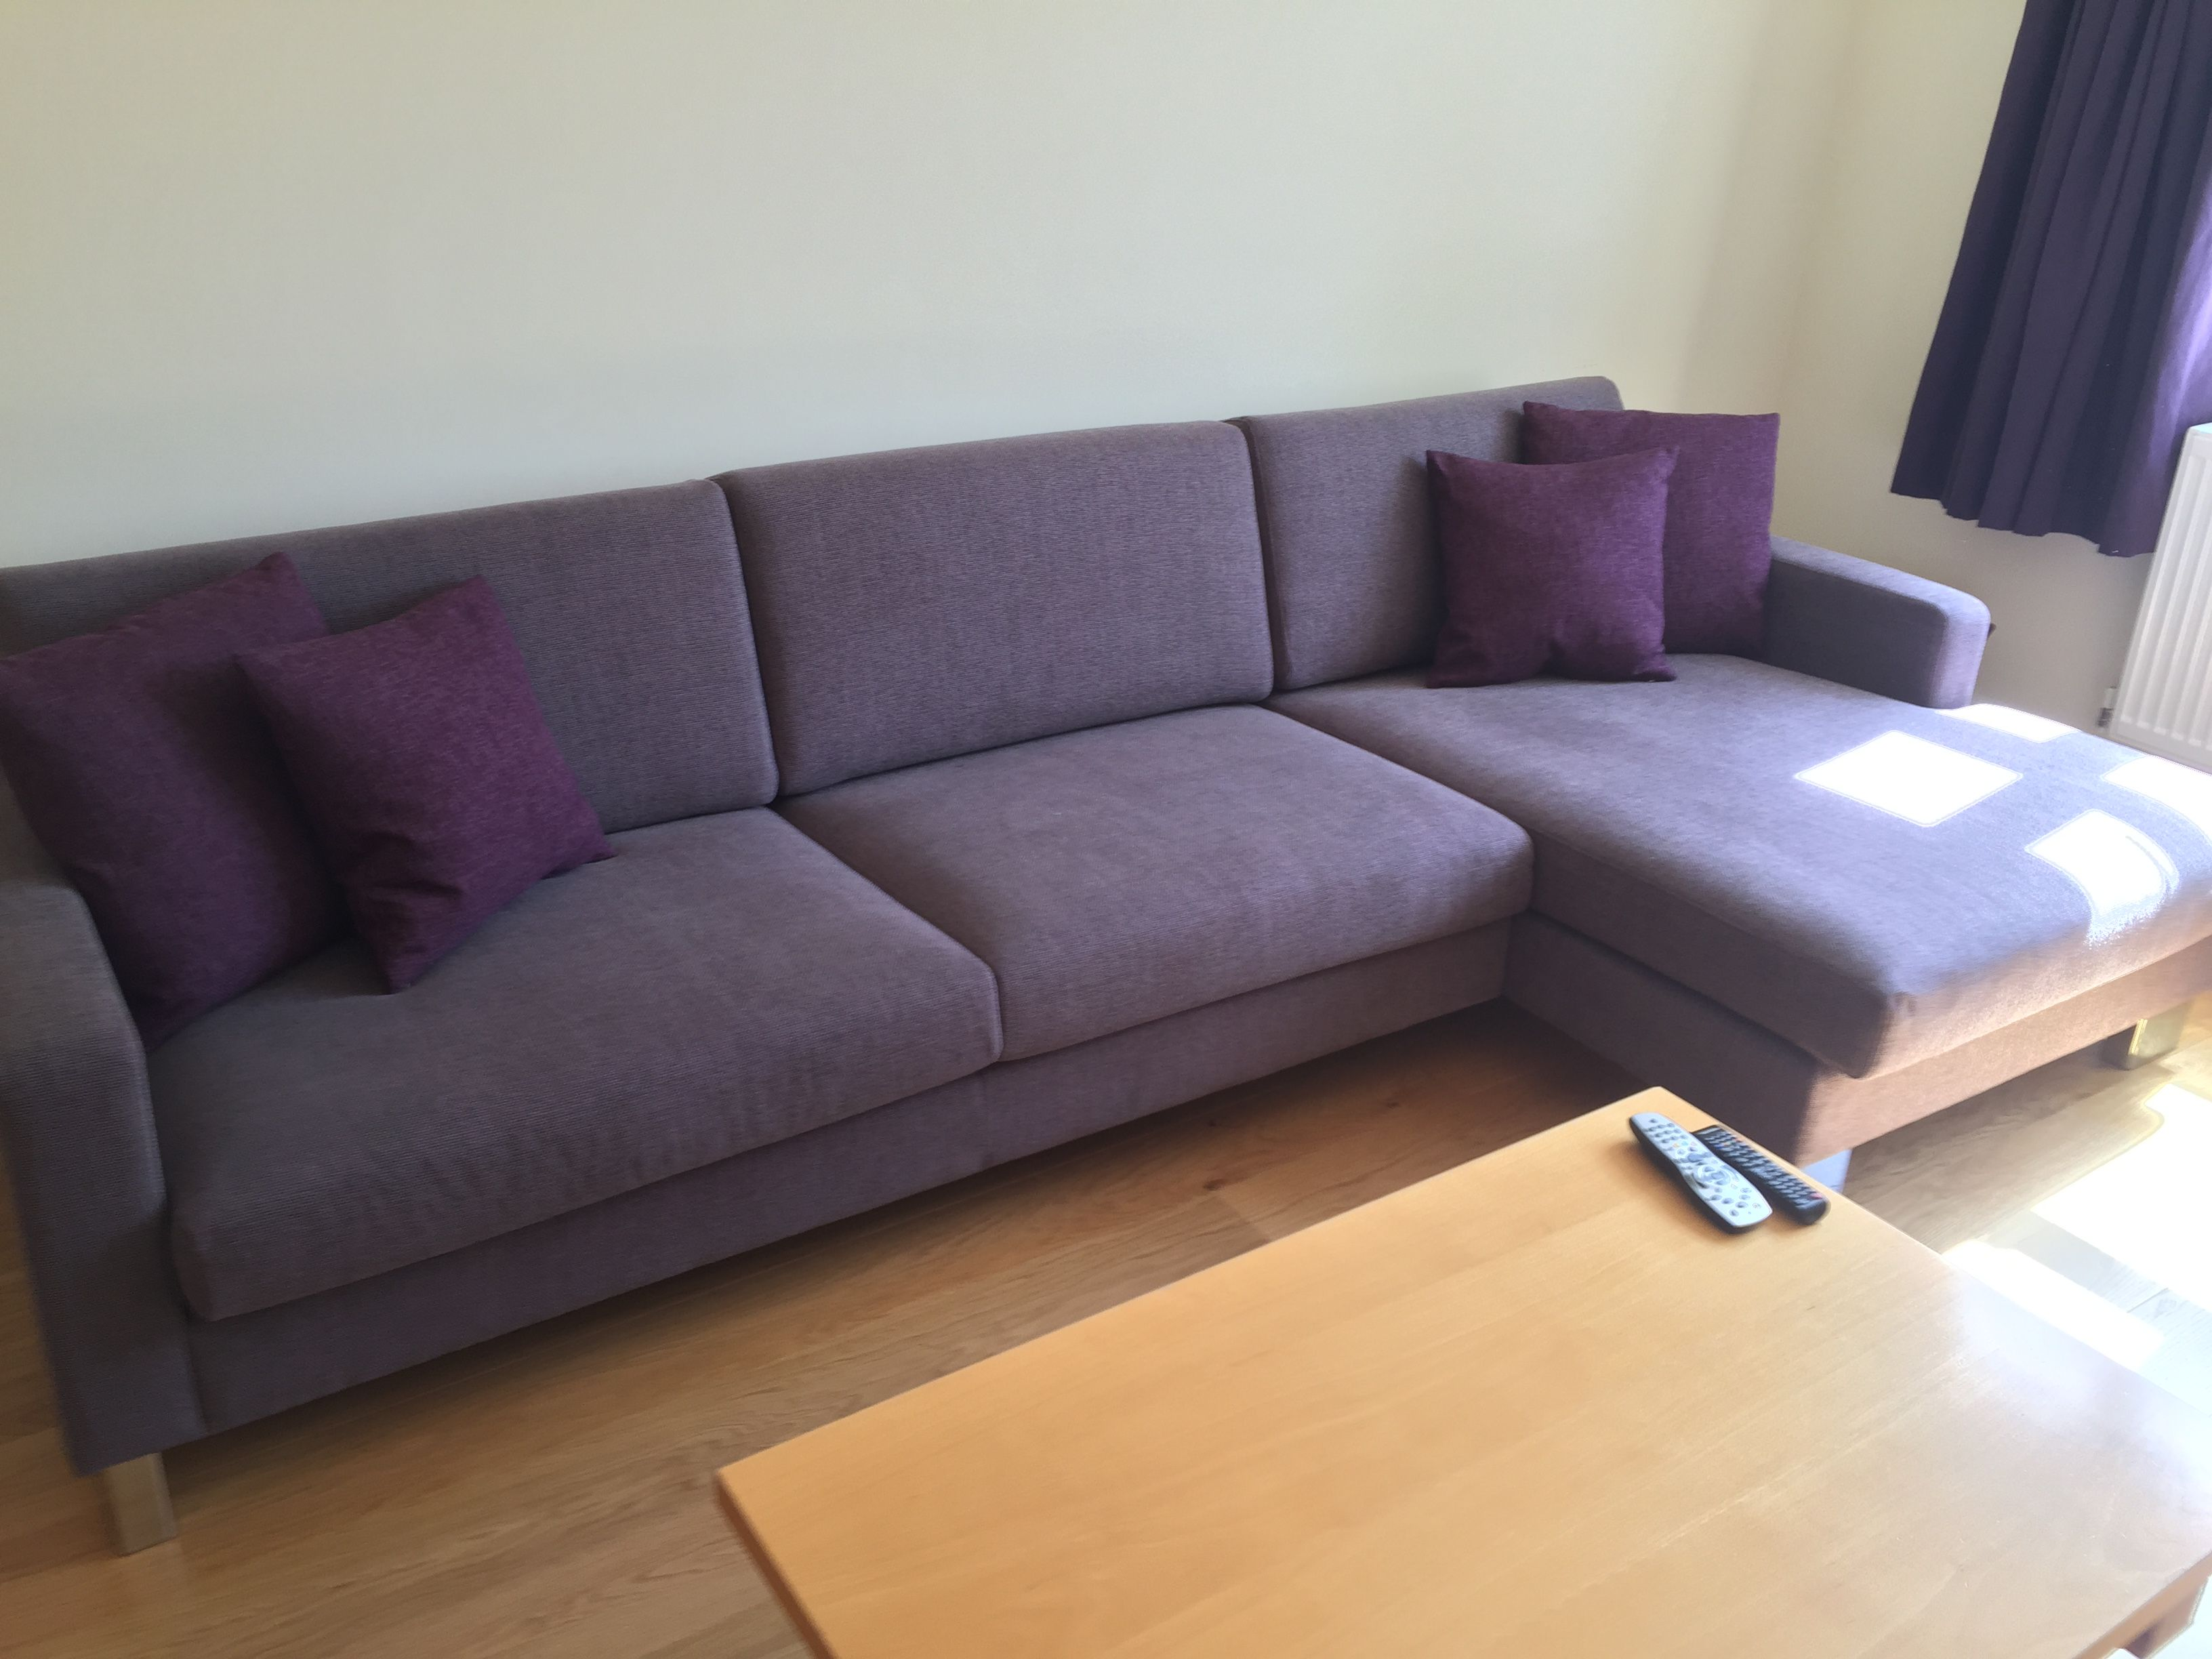 Corylus right handed chaise sofa in J Brown Harley lavender